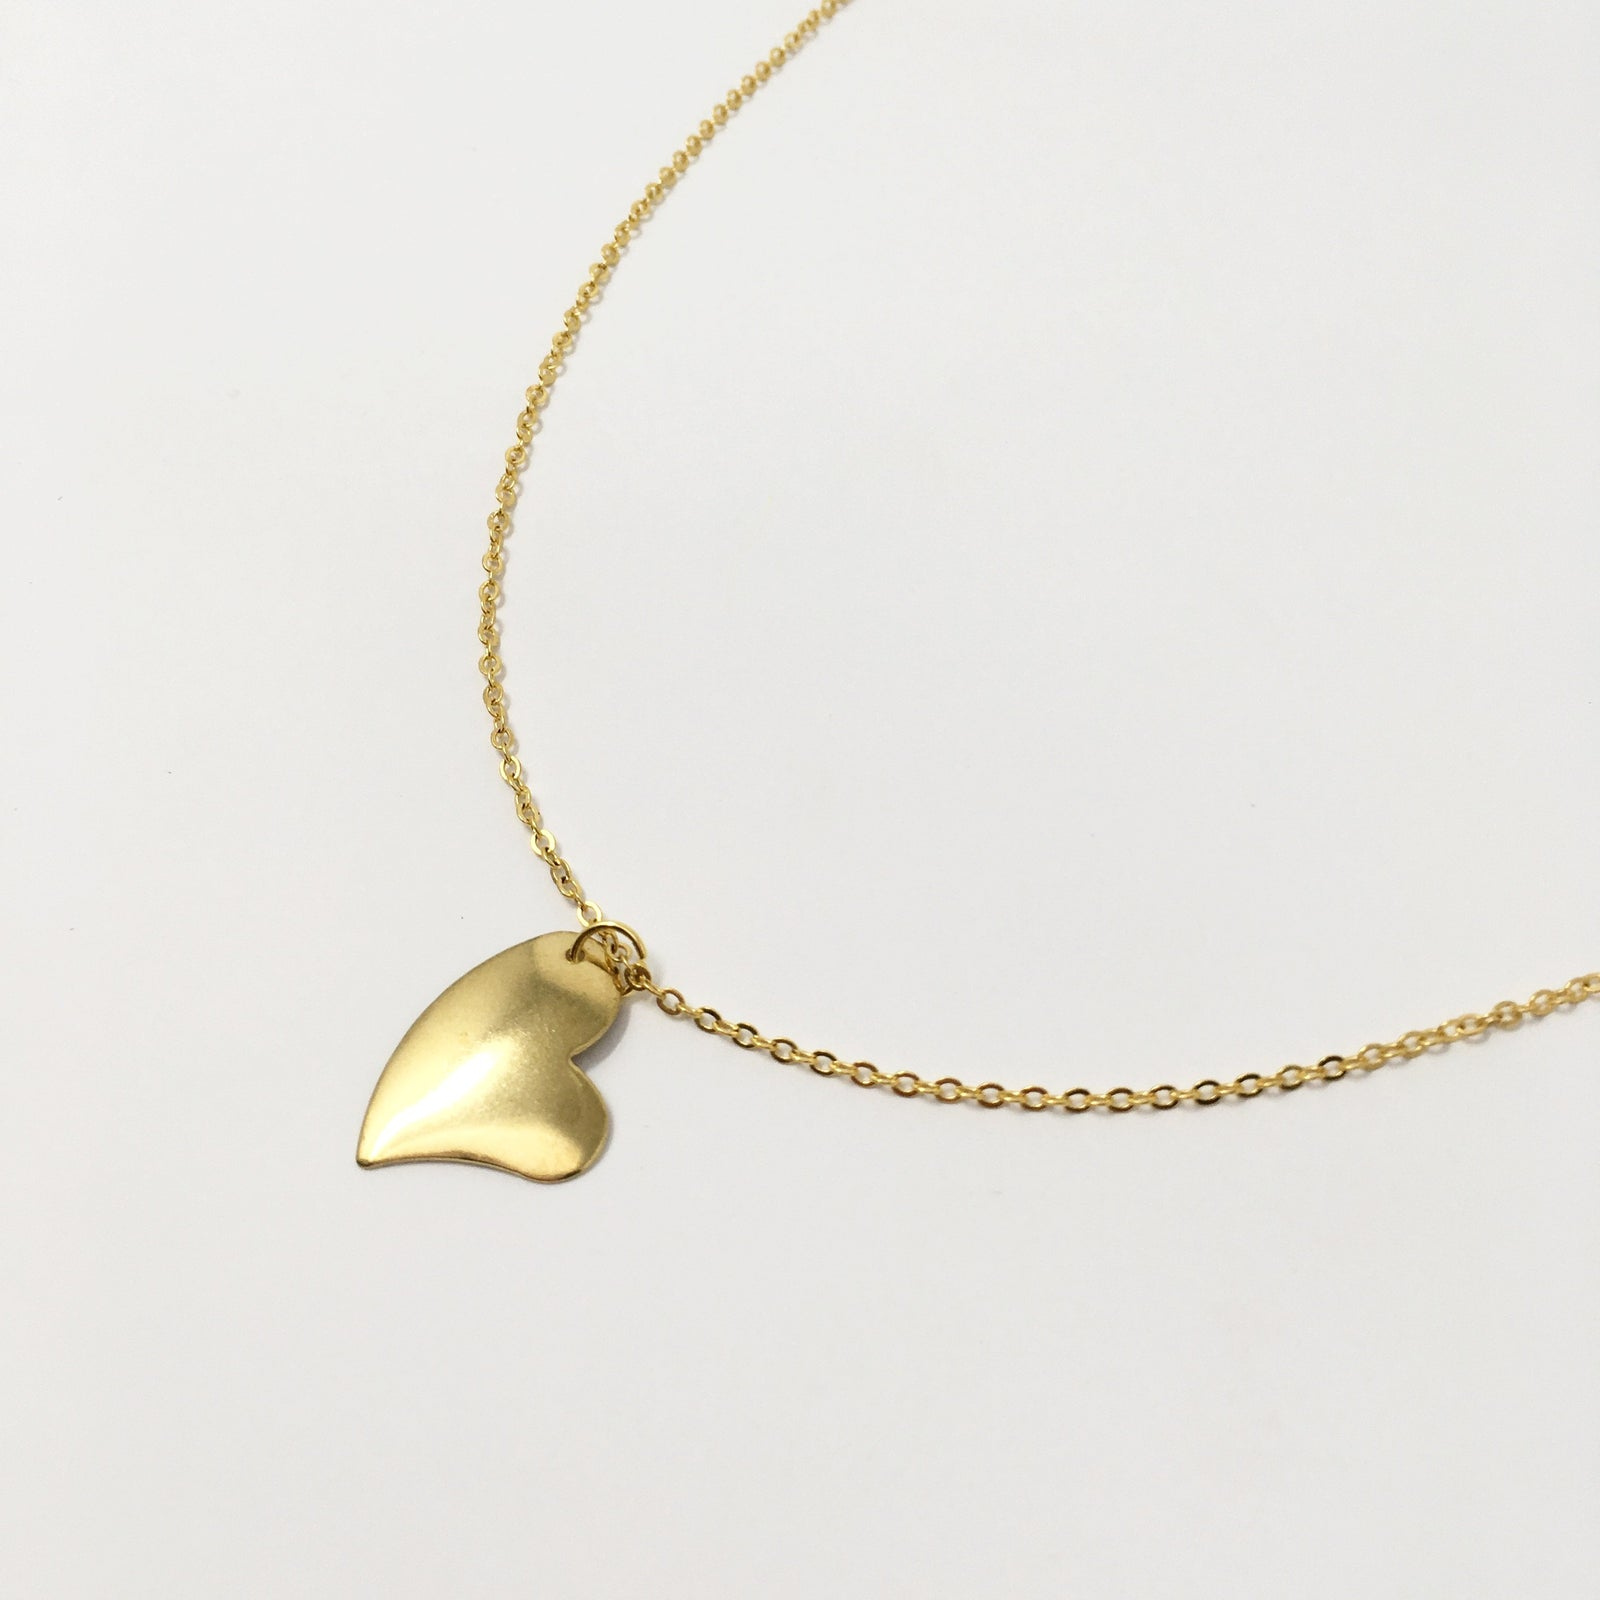 HOPEFUL HEART GOLD NECKLACE